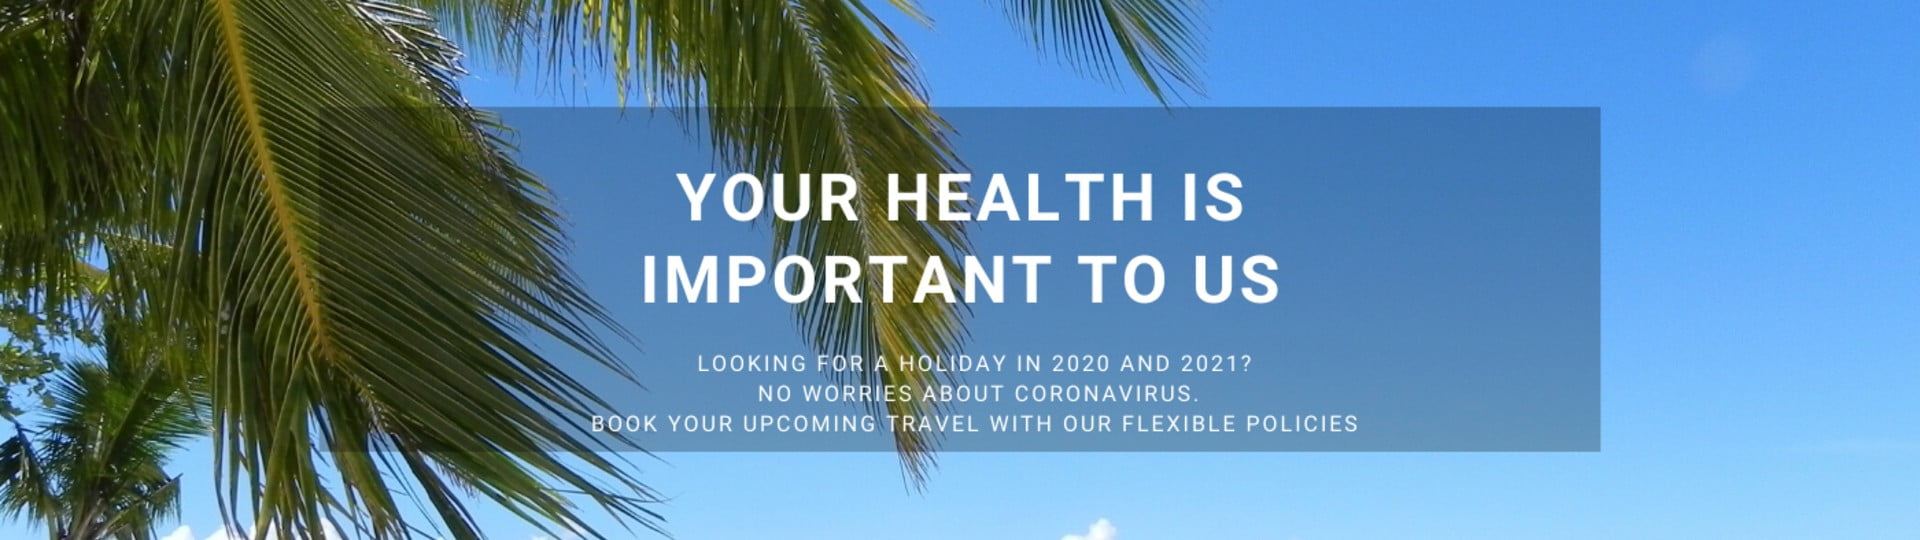 Looking for a holiday in 2020 and 2021? No worries about Coronavirus!